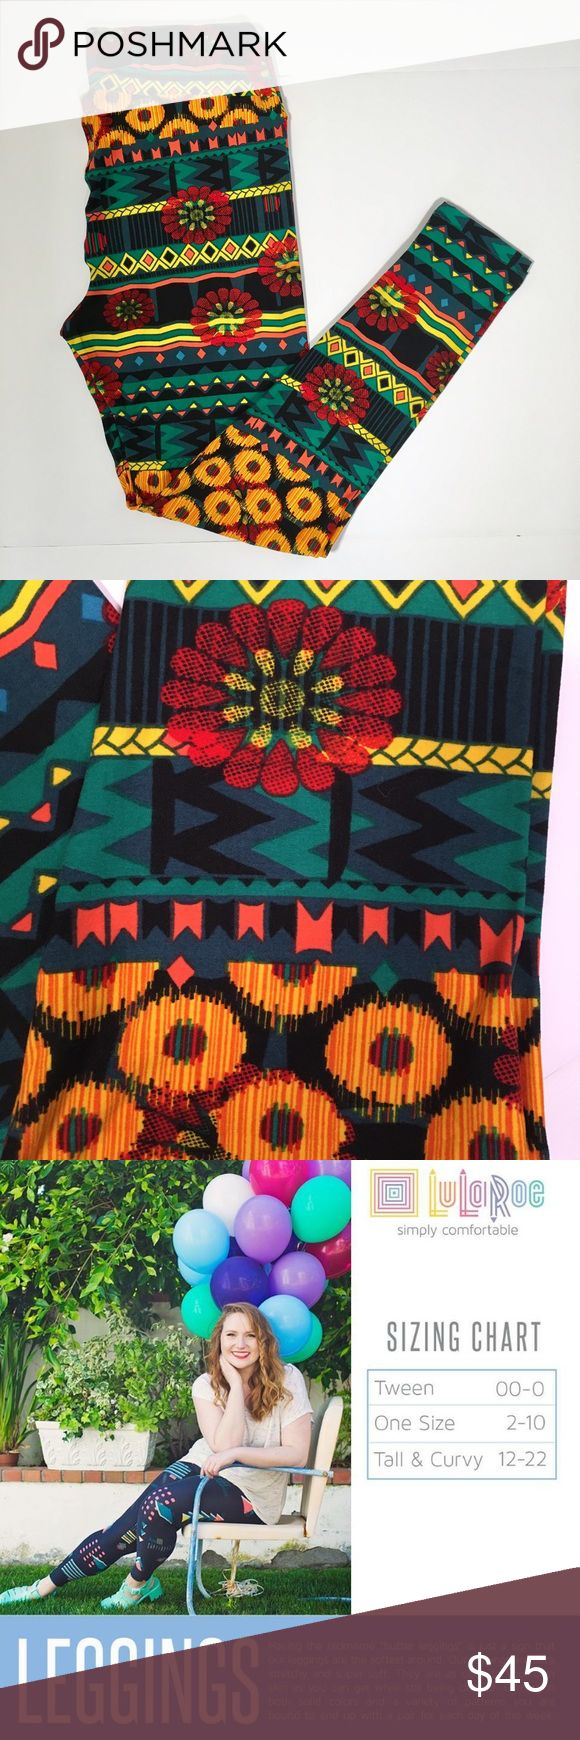 NWT LuLaRoe Tall Curvy Leggings Geo Flowers New with tags! Never worn! Tall and Curvy LuLaRoe leggings fit sizes 12-20. Bright flowers and geometric lines, stripes, tiny triangles, big daisies in gemstone colors green, gold, red, yellow, orange and black background. So comfy and soft! LuLaRoe Pants Leggings